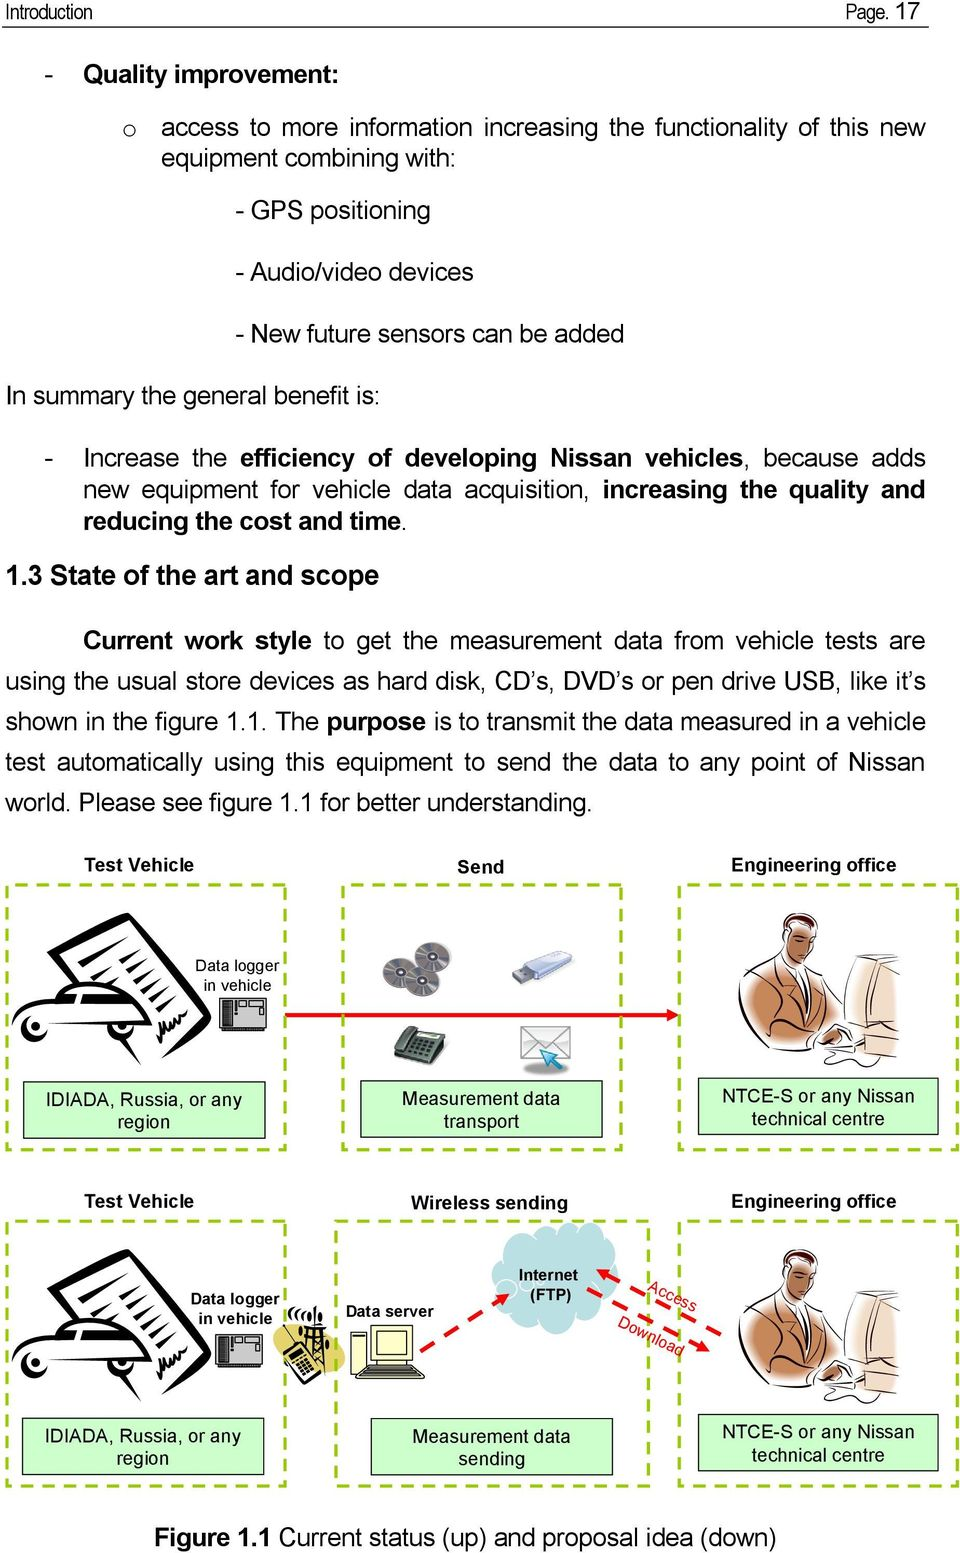 New future sensors can be added - Increase the efficiency of developing Nissan vehicles, because adds new equipment for vehicle data acquisition, increasing the quality and reducing the cost and time.